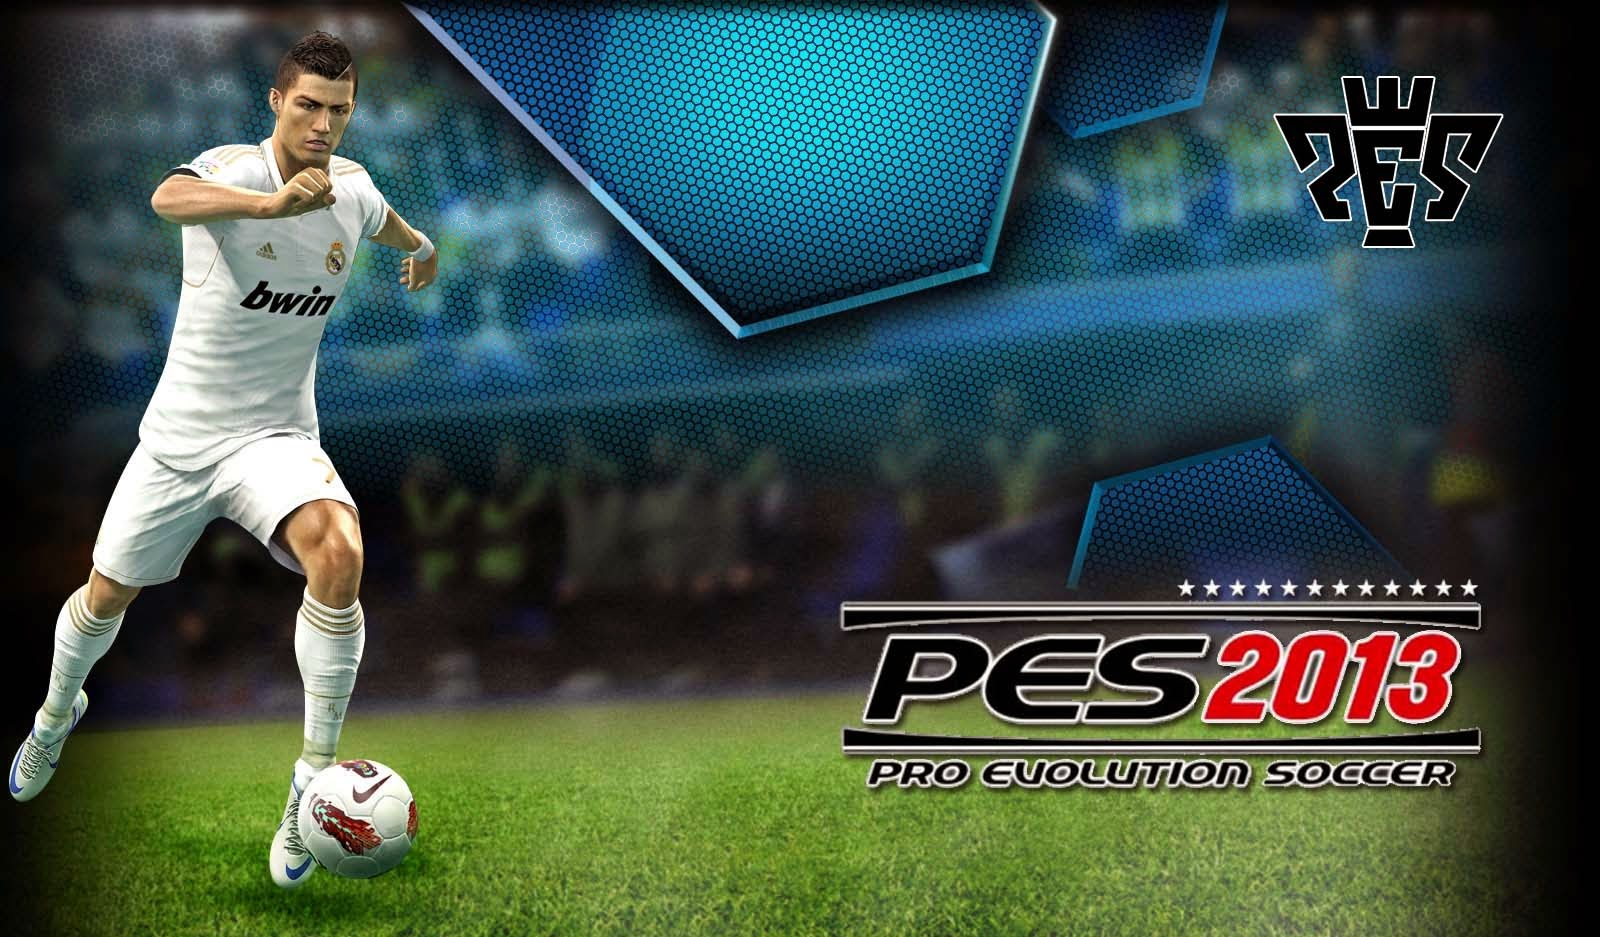 PES Edit 2013 Patch 6.0 Terbaru For PC Full Version